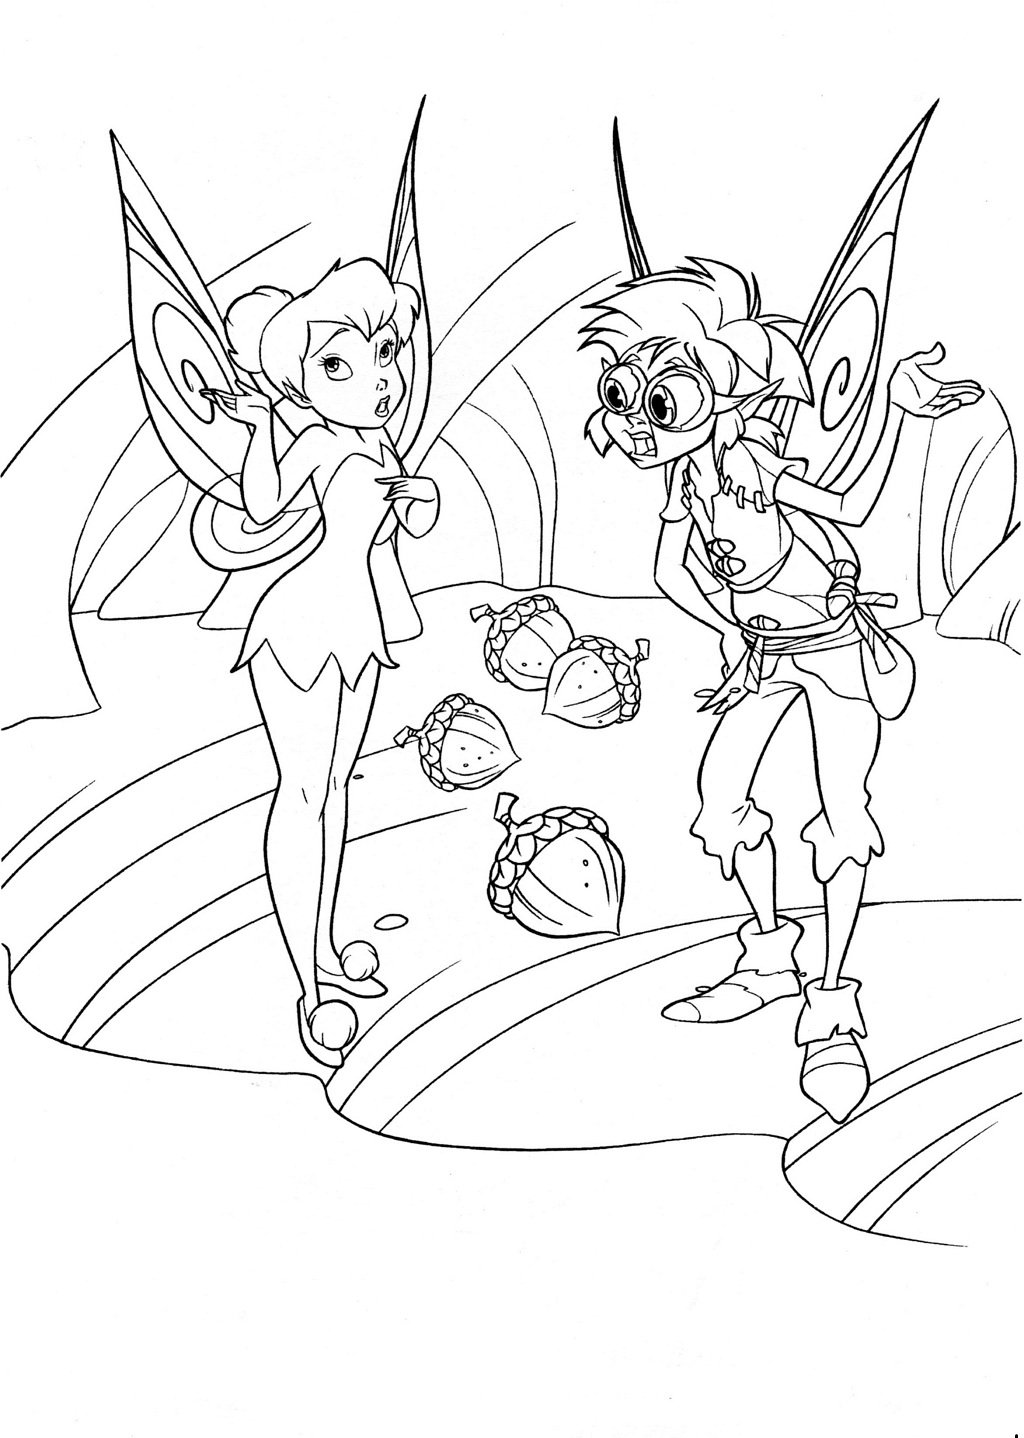 coloring disney fairies printable disney fairies coloring pages for kids cool2bkids disney coloring fairies